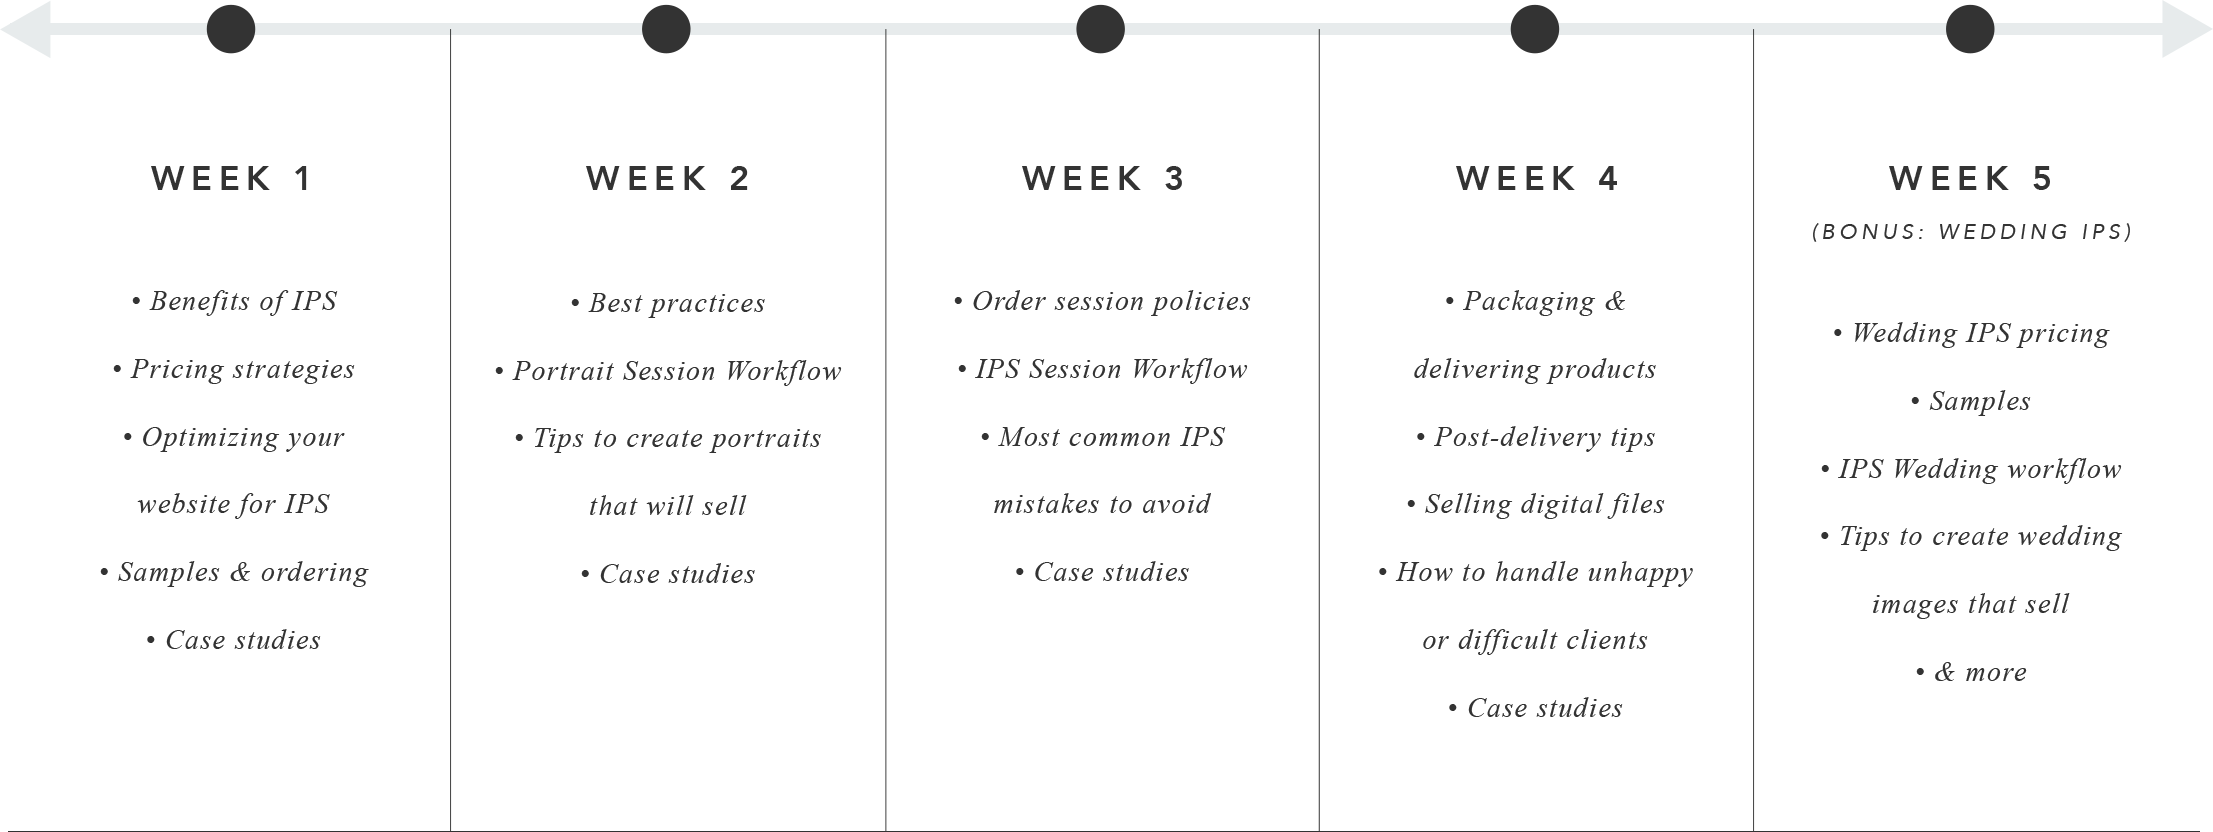 IPS Sales Guide 4-Week Course Timeline